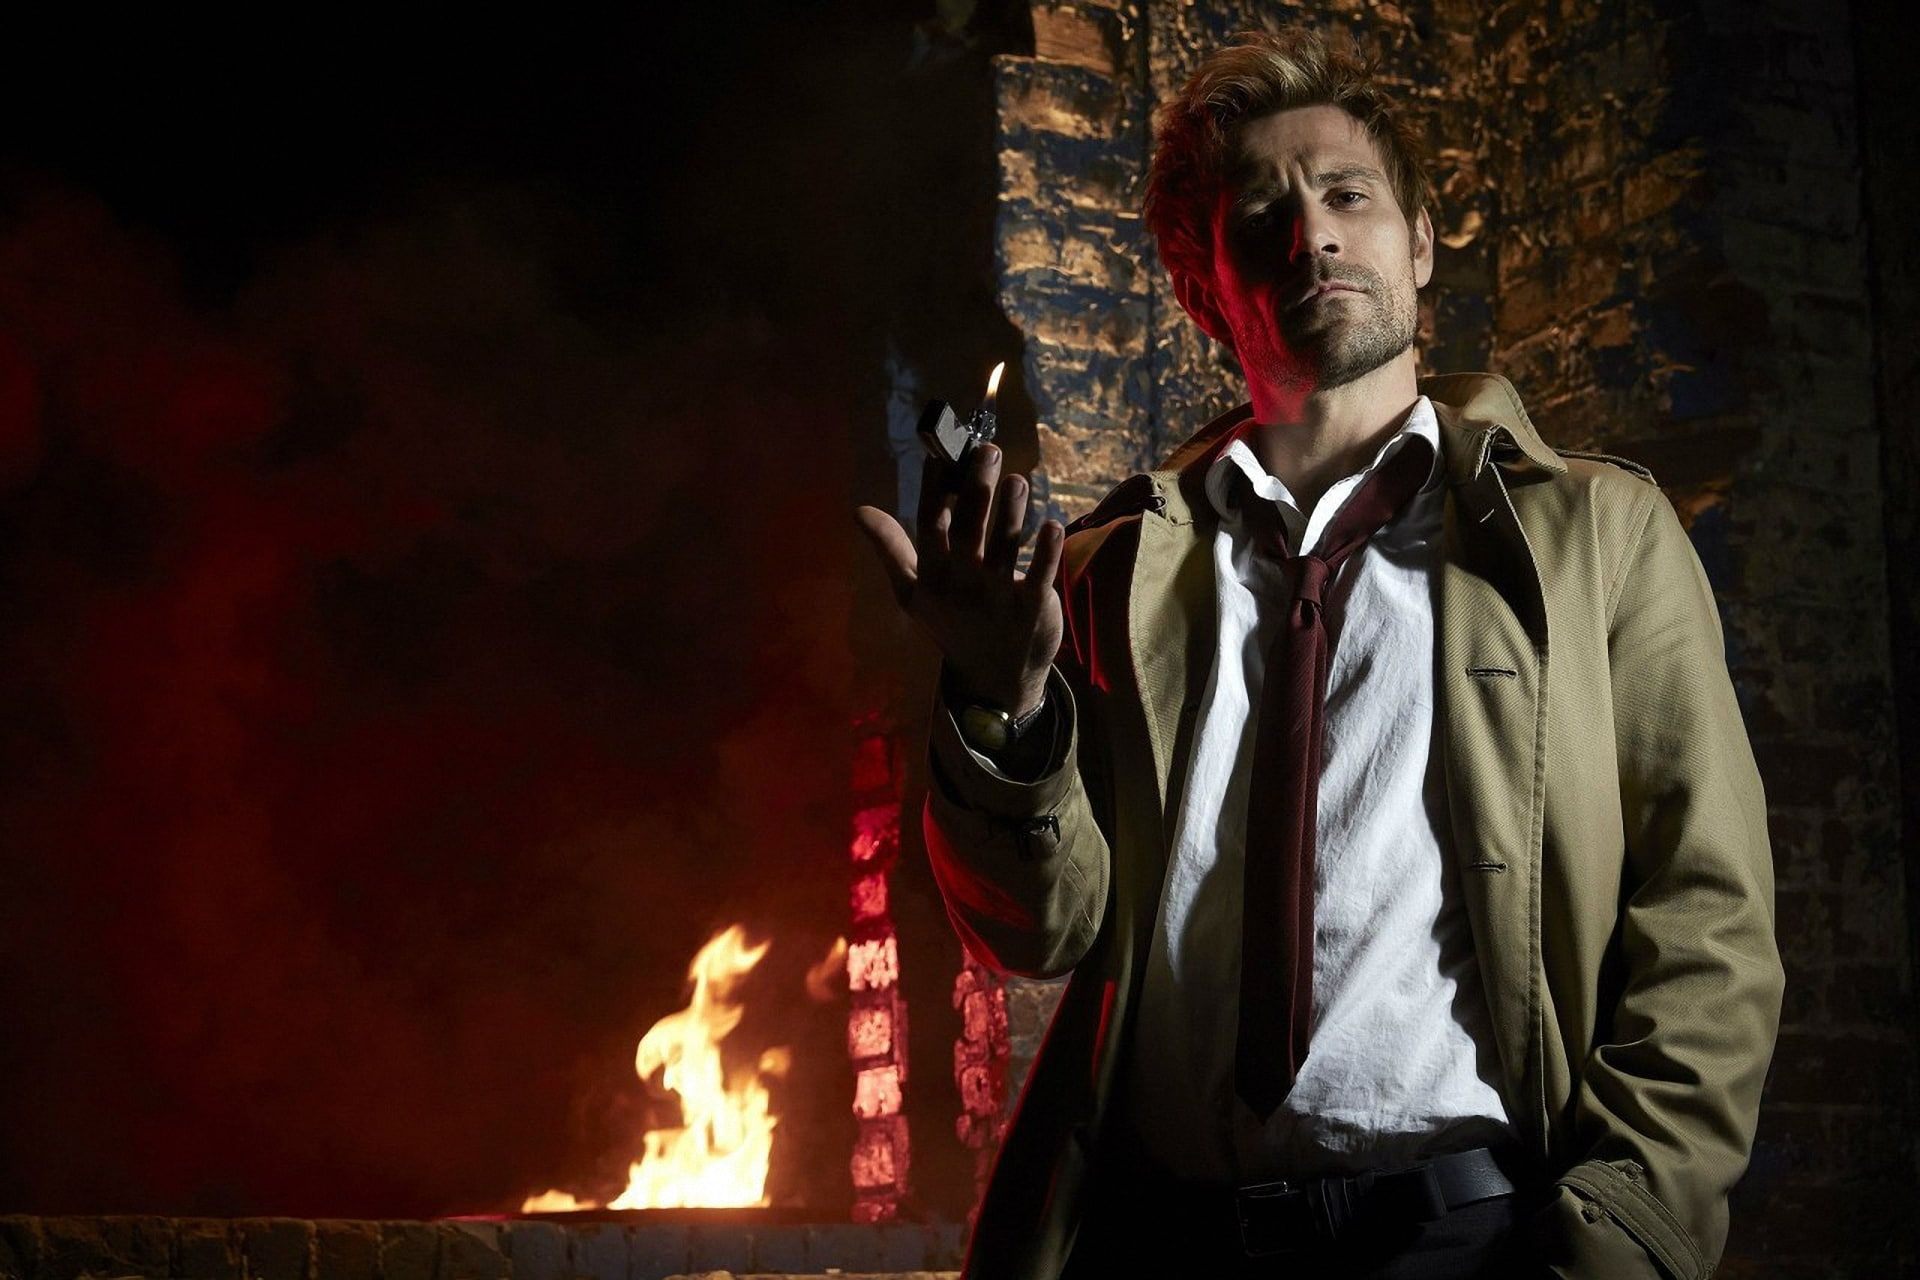 Fire Street Lighter The Series John Constantine Constantine Matt Ryan Matt Ryan 1080p Wallpaper Hd In 2020 Matt Ryan Constantine Matt Ryan Constantine Tv Show